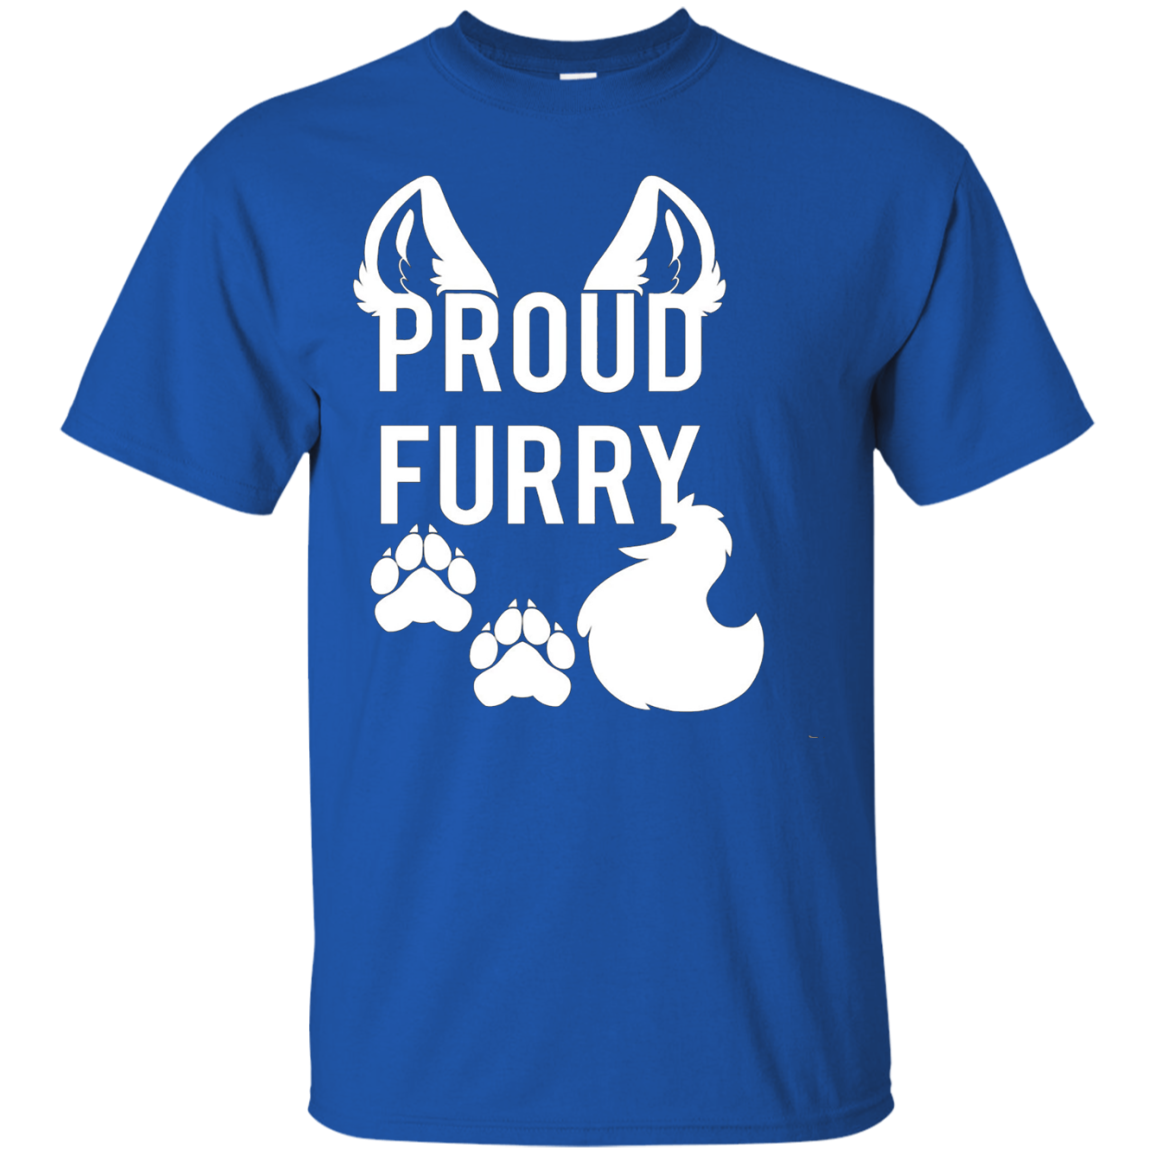 PROUD FURRY t shirt